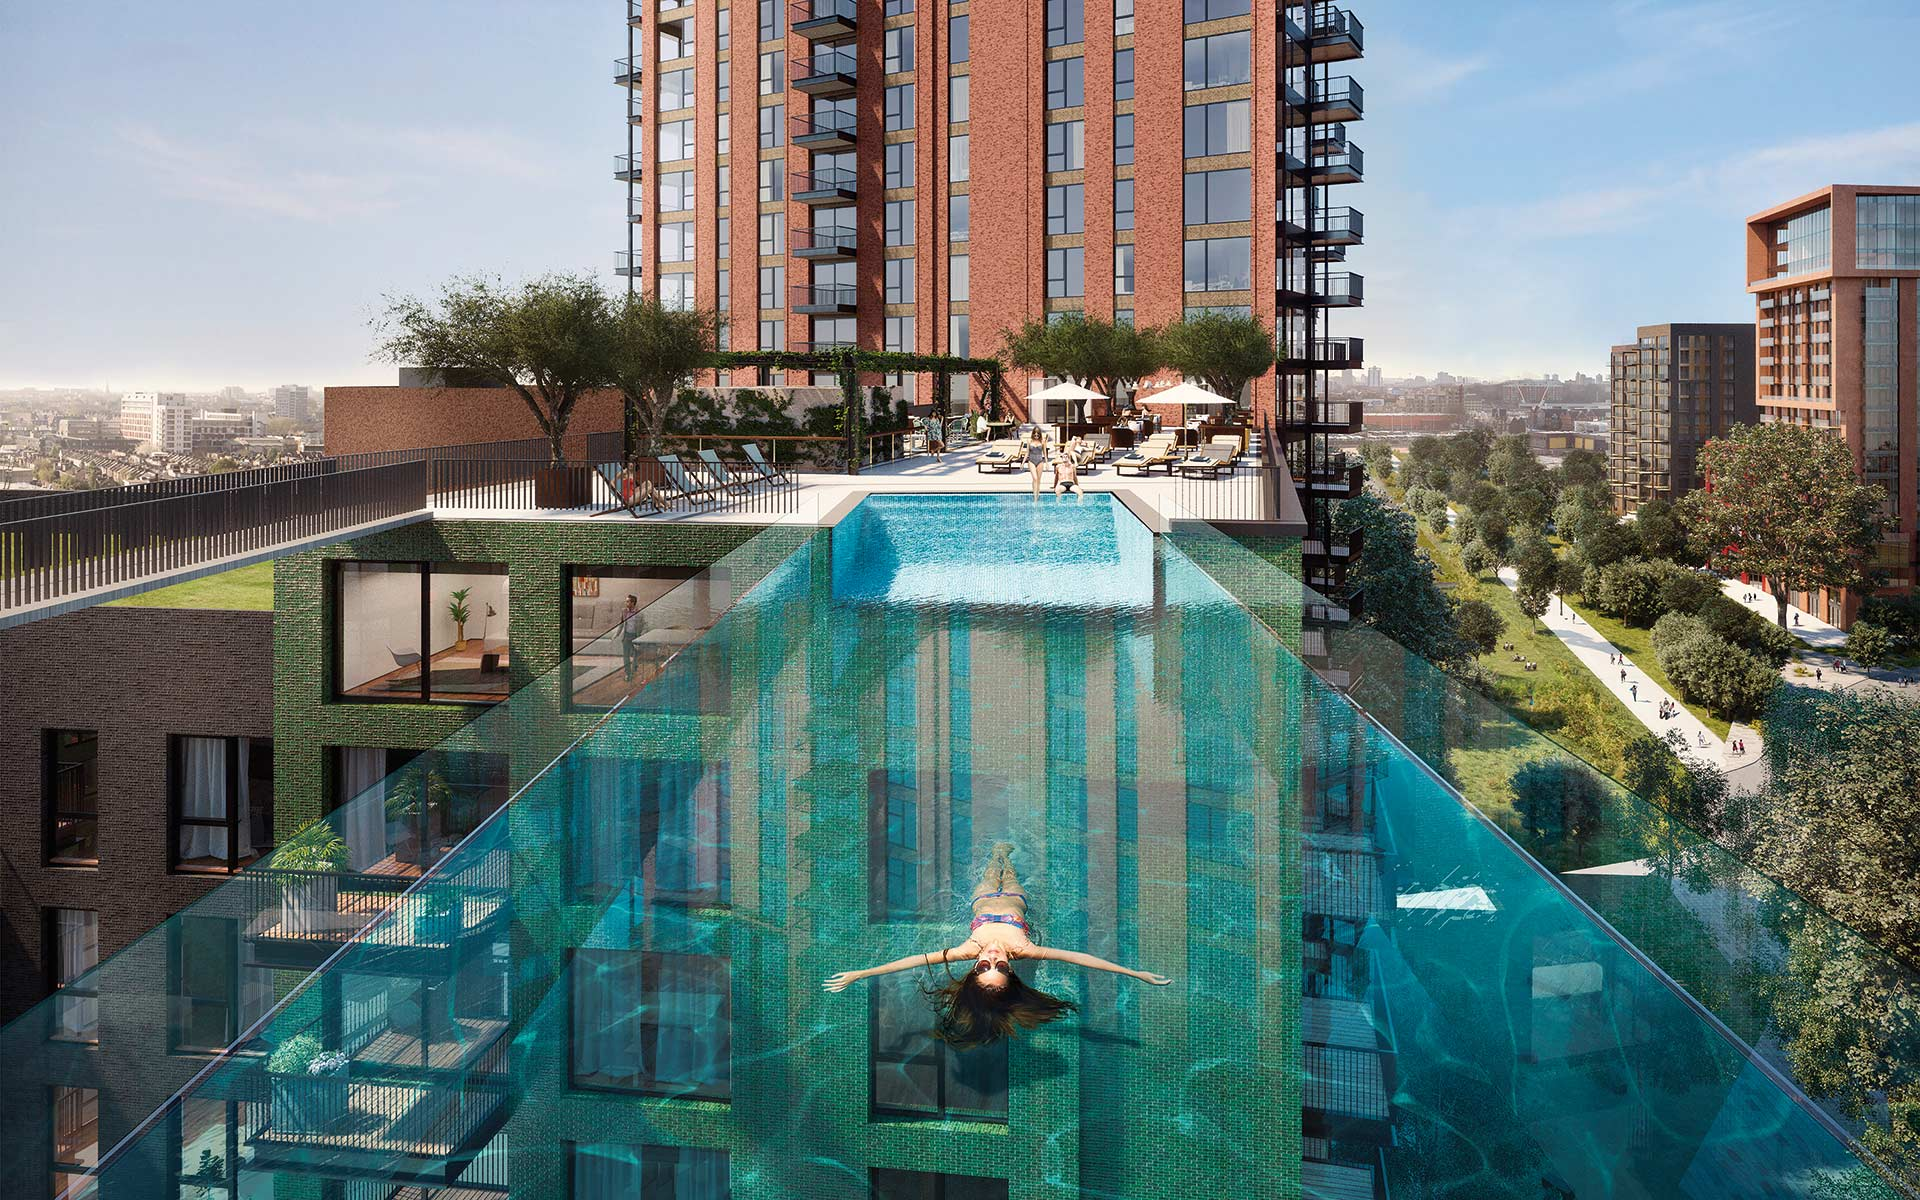 Embassy Gardens sky pool